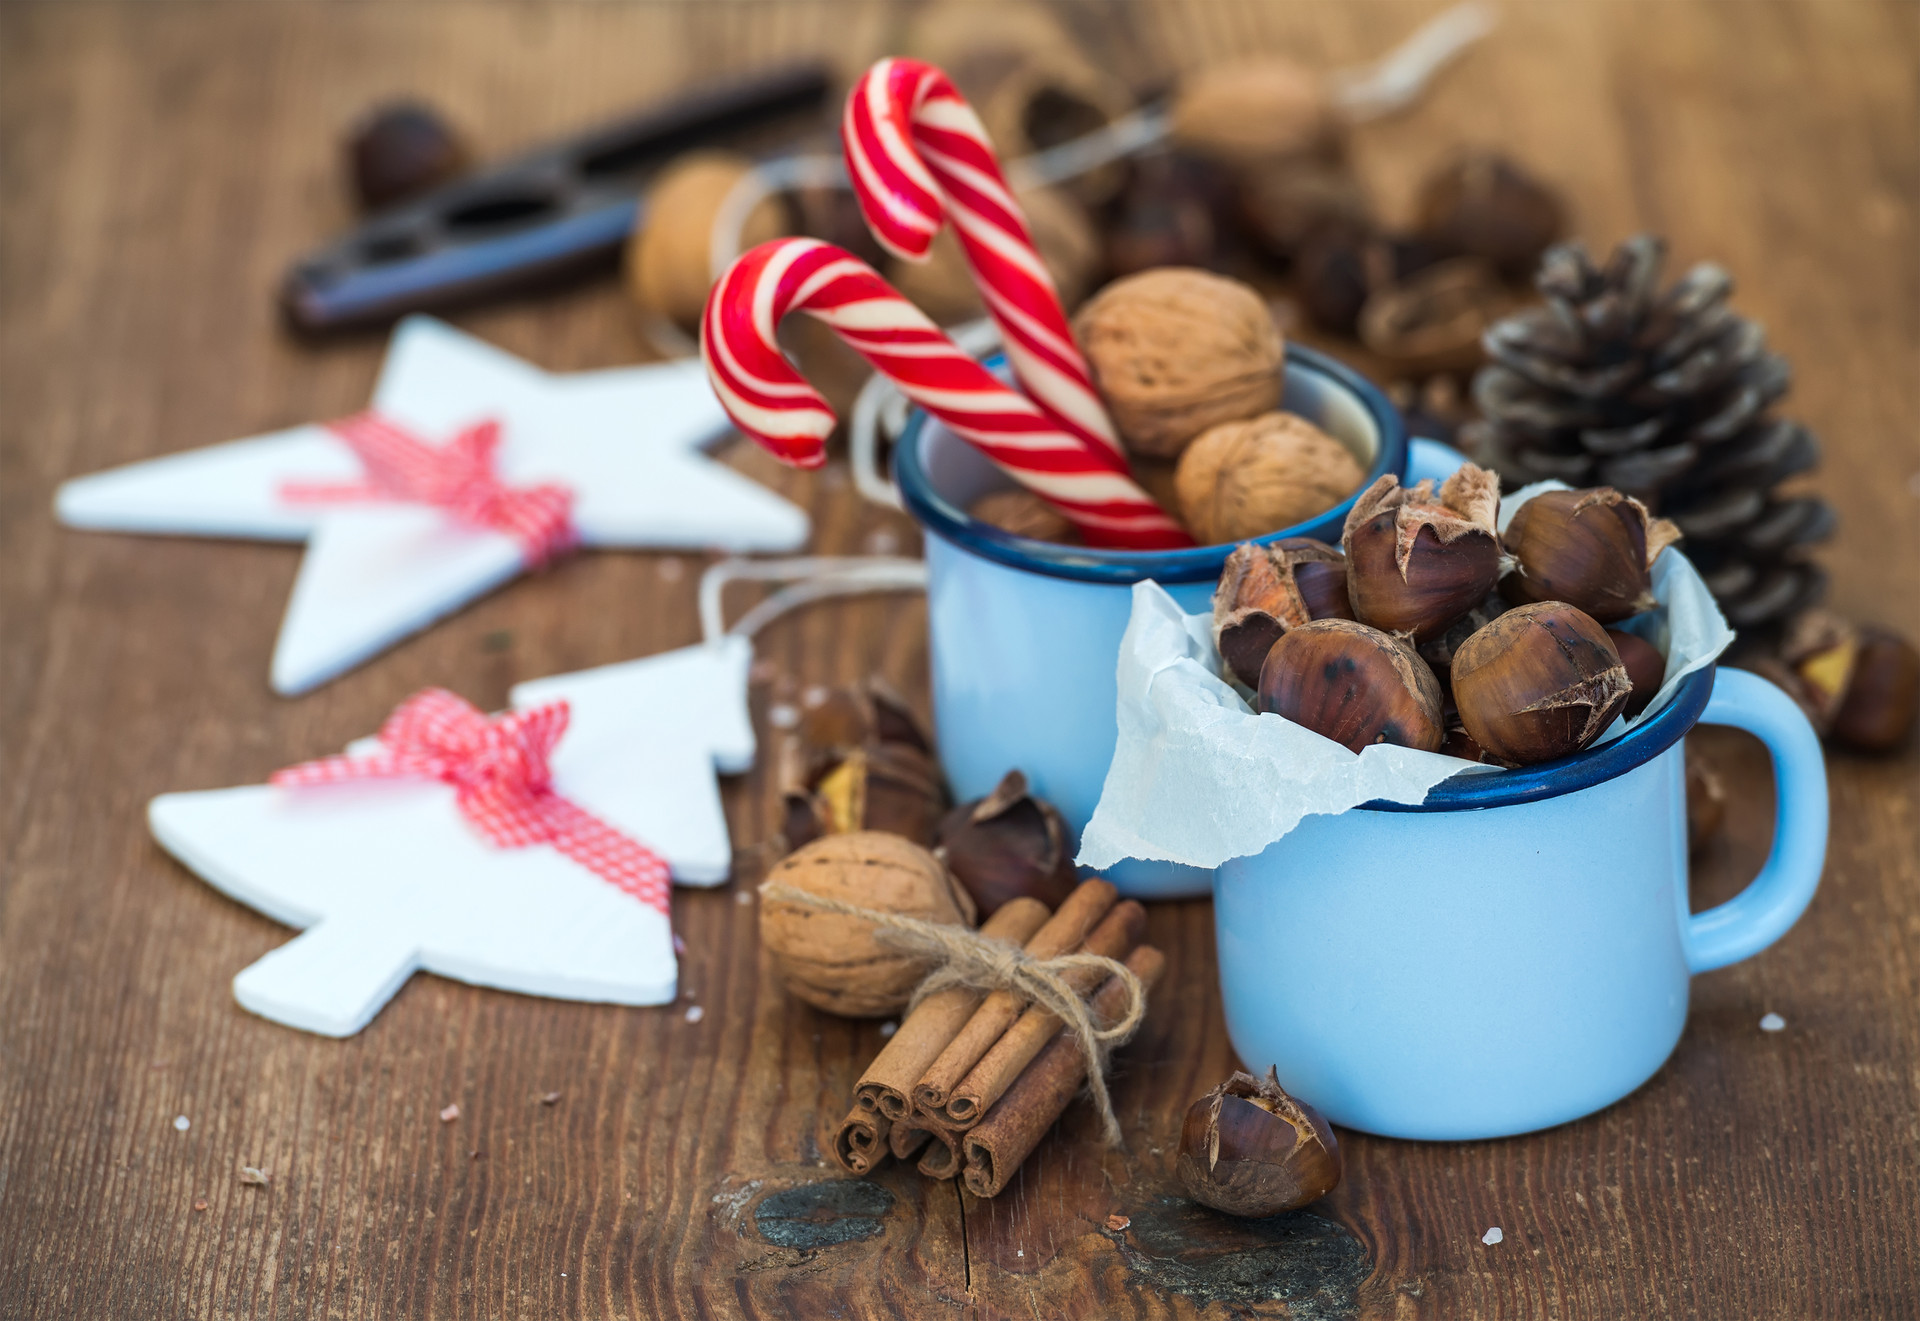 traditional-christmas-foods-and-decorati